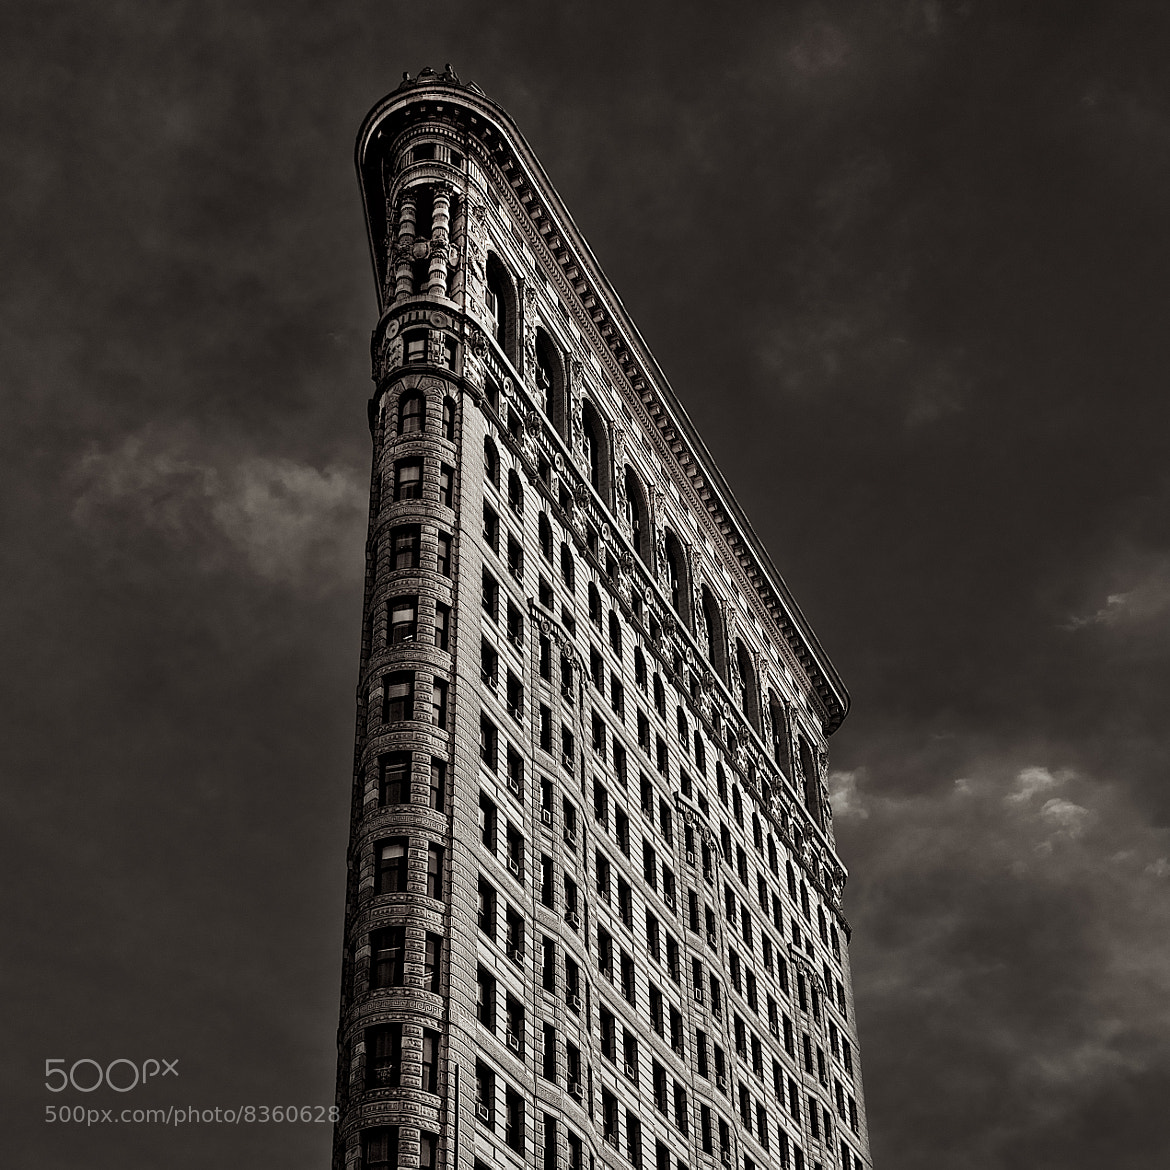 Photograph Manhattan_Flat Iron by Gorrest Fump on 500px